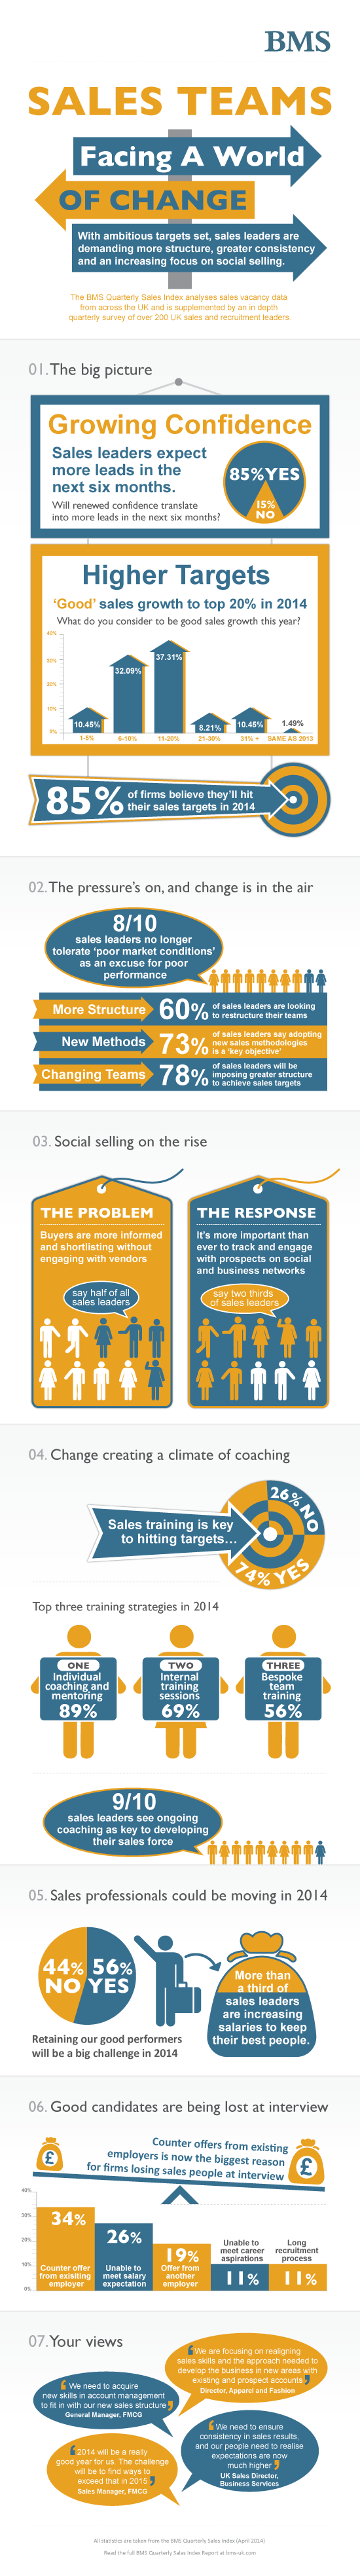 sales-teams-facing-world-of-change